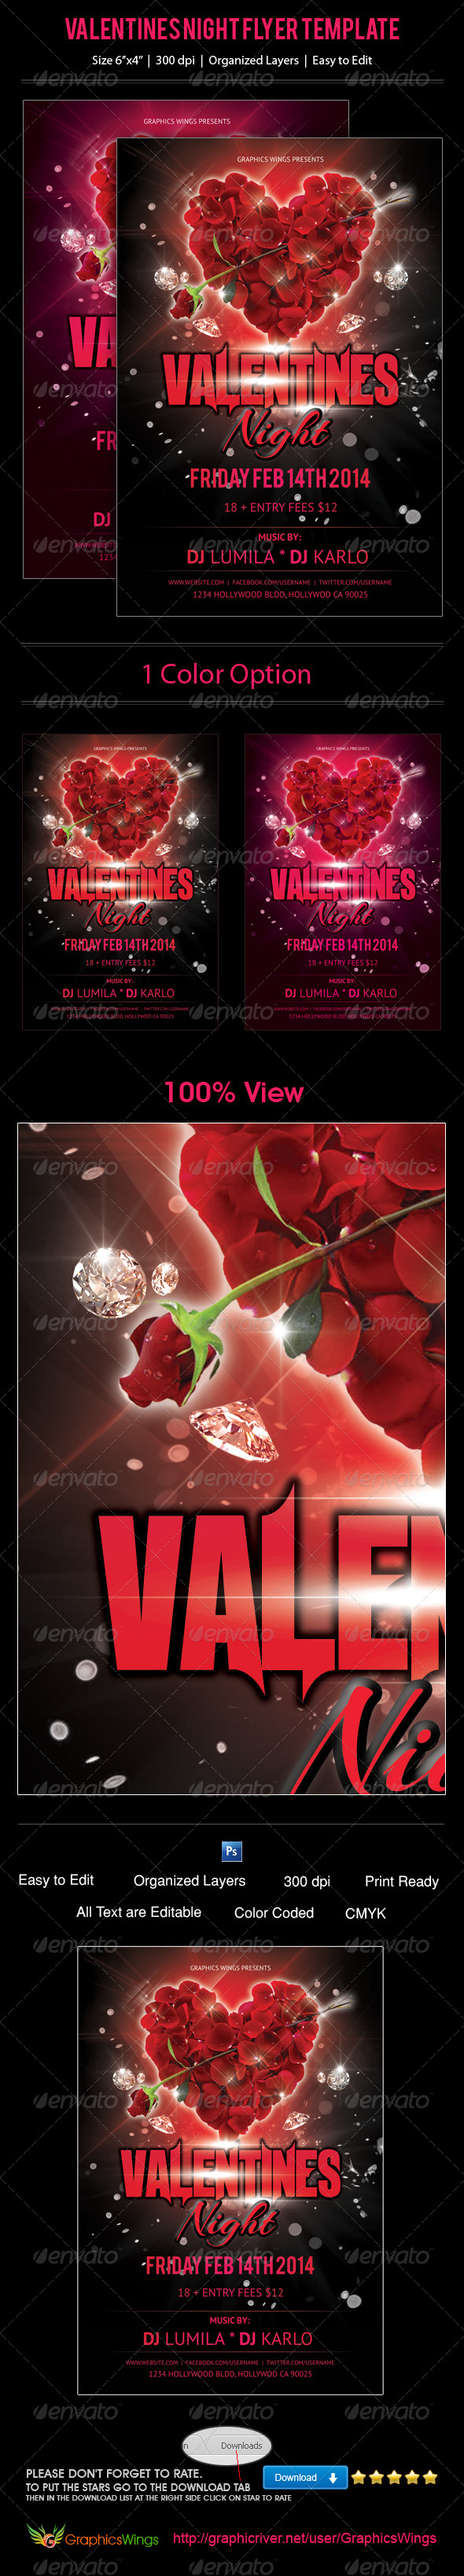 Valentines Night Flyer Template - Events Flyers